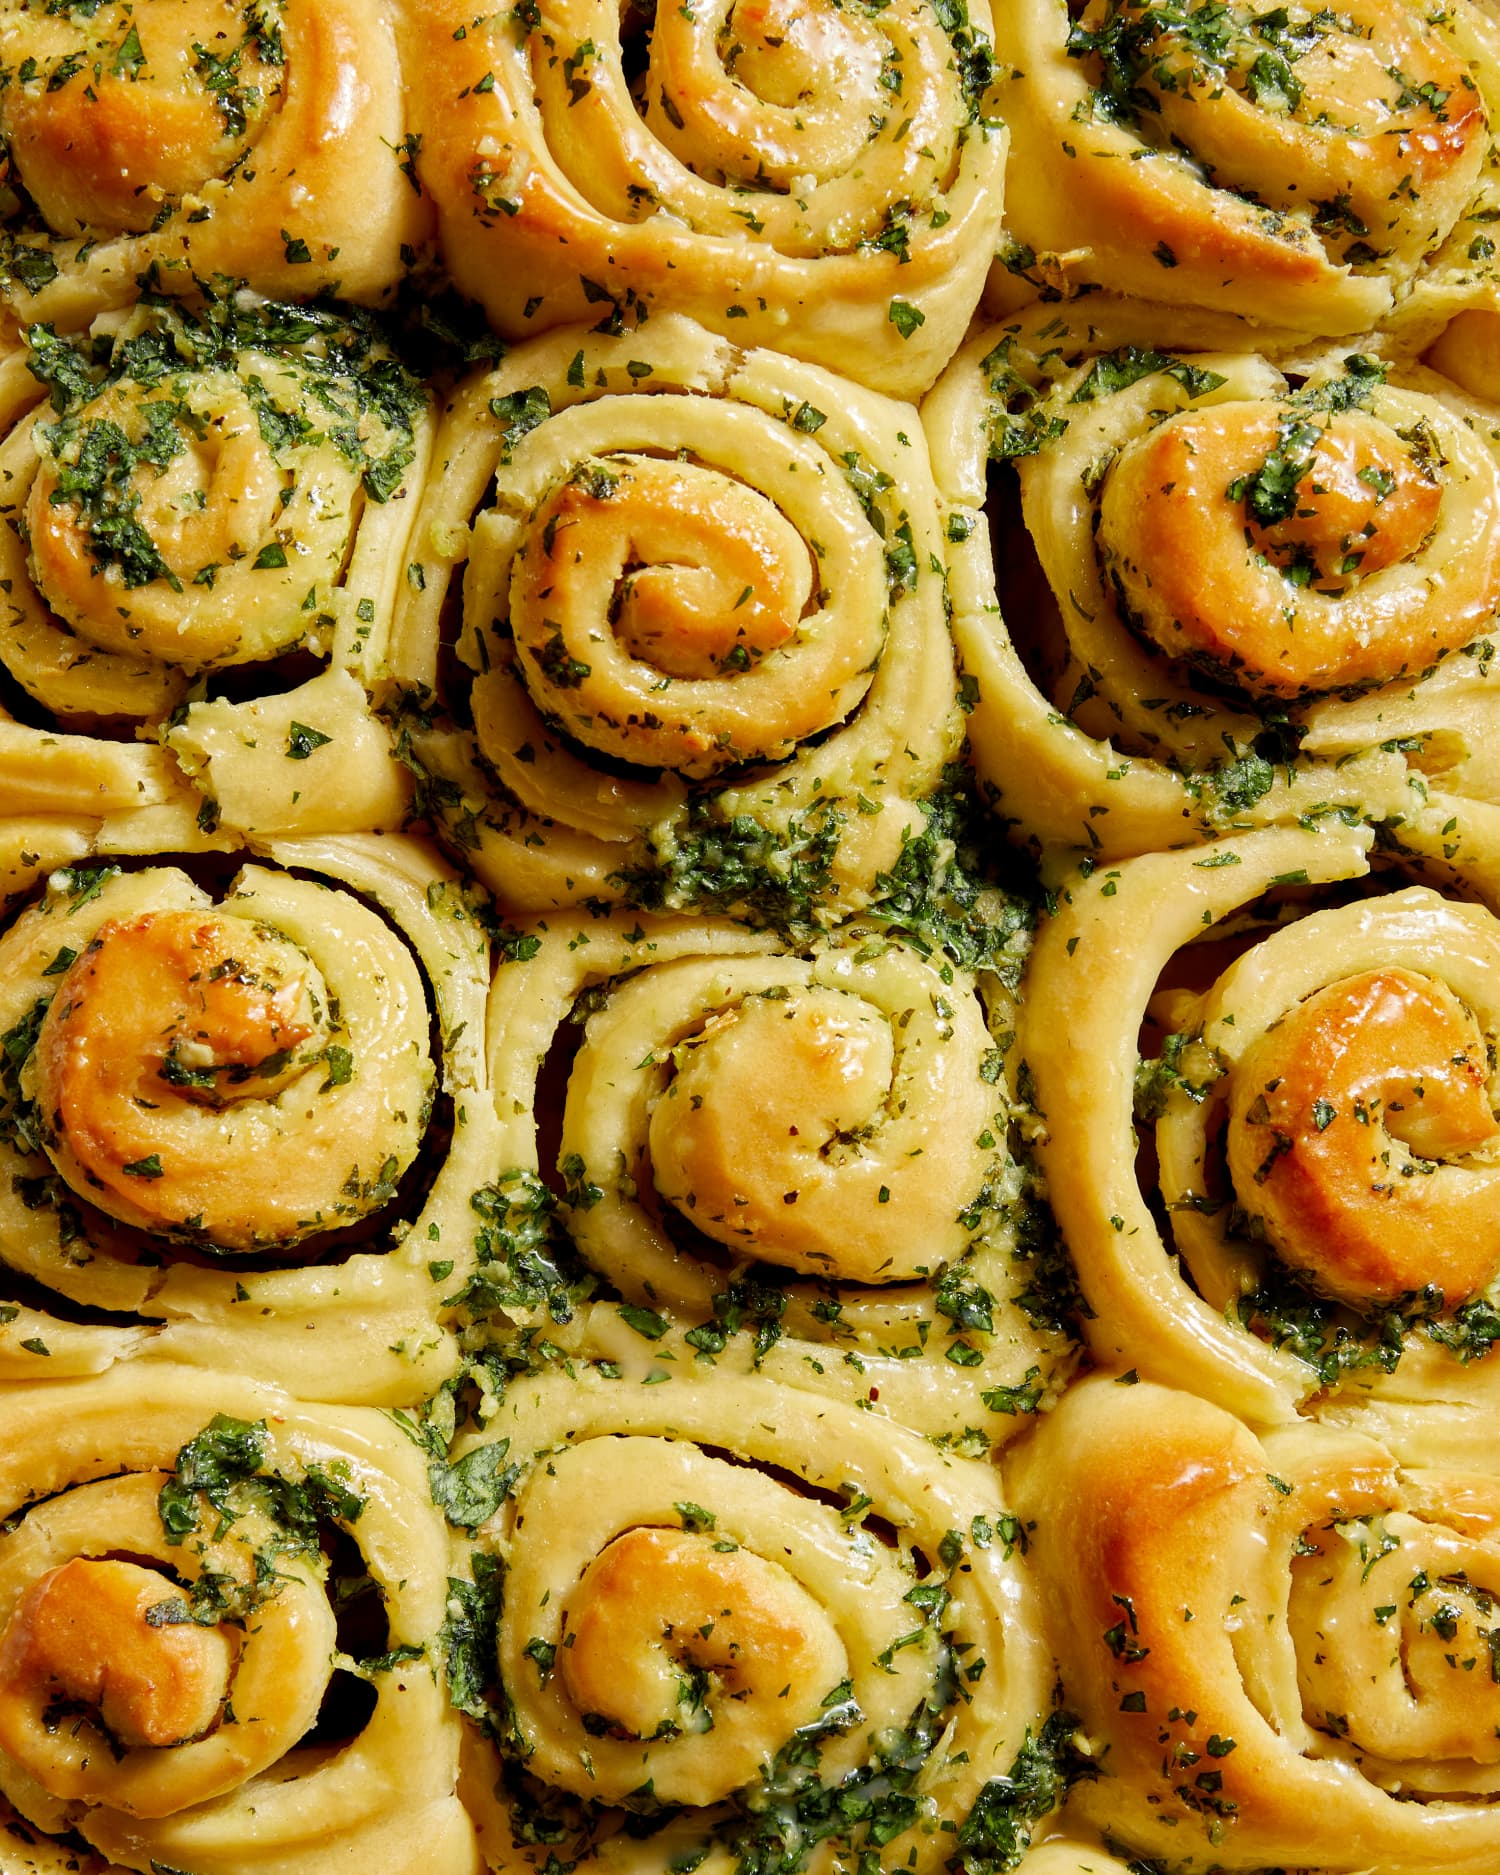 It's Official: Garlic-Swirl Rolls Are the New Garlic Knots